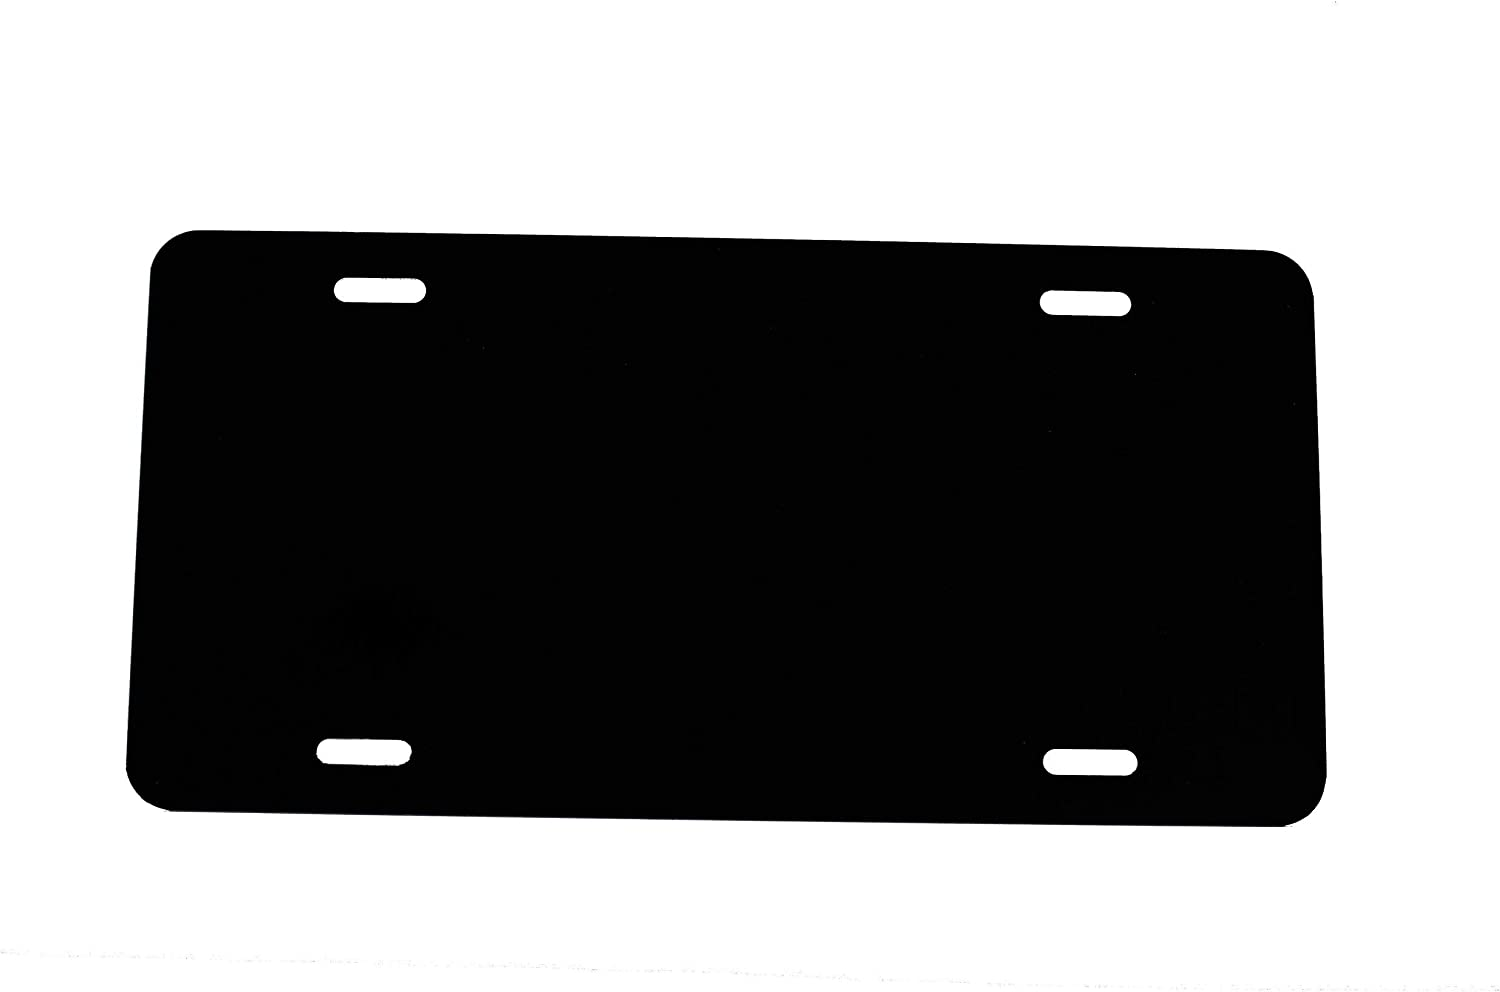 Laser Cut LICENSEPLATETAGS.COM WHITE 0.5mm Aluminum Blank License Plate MADE IN USA 12x6 .020 Gauge